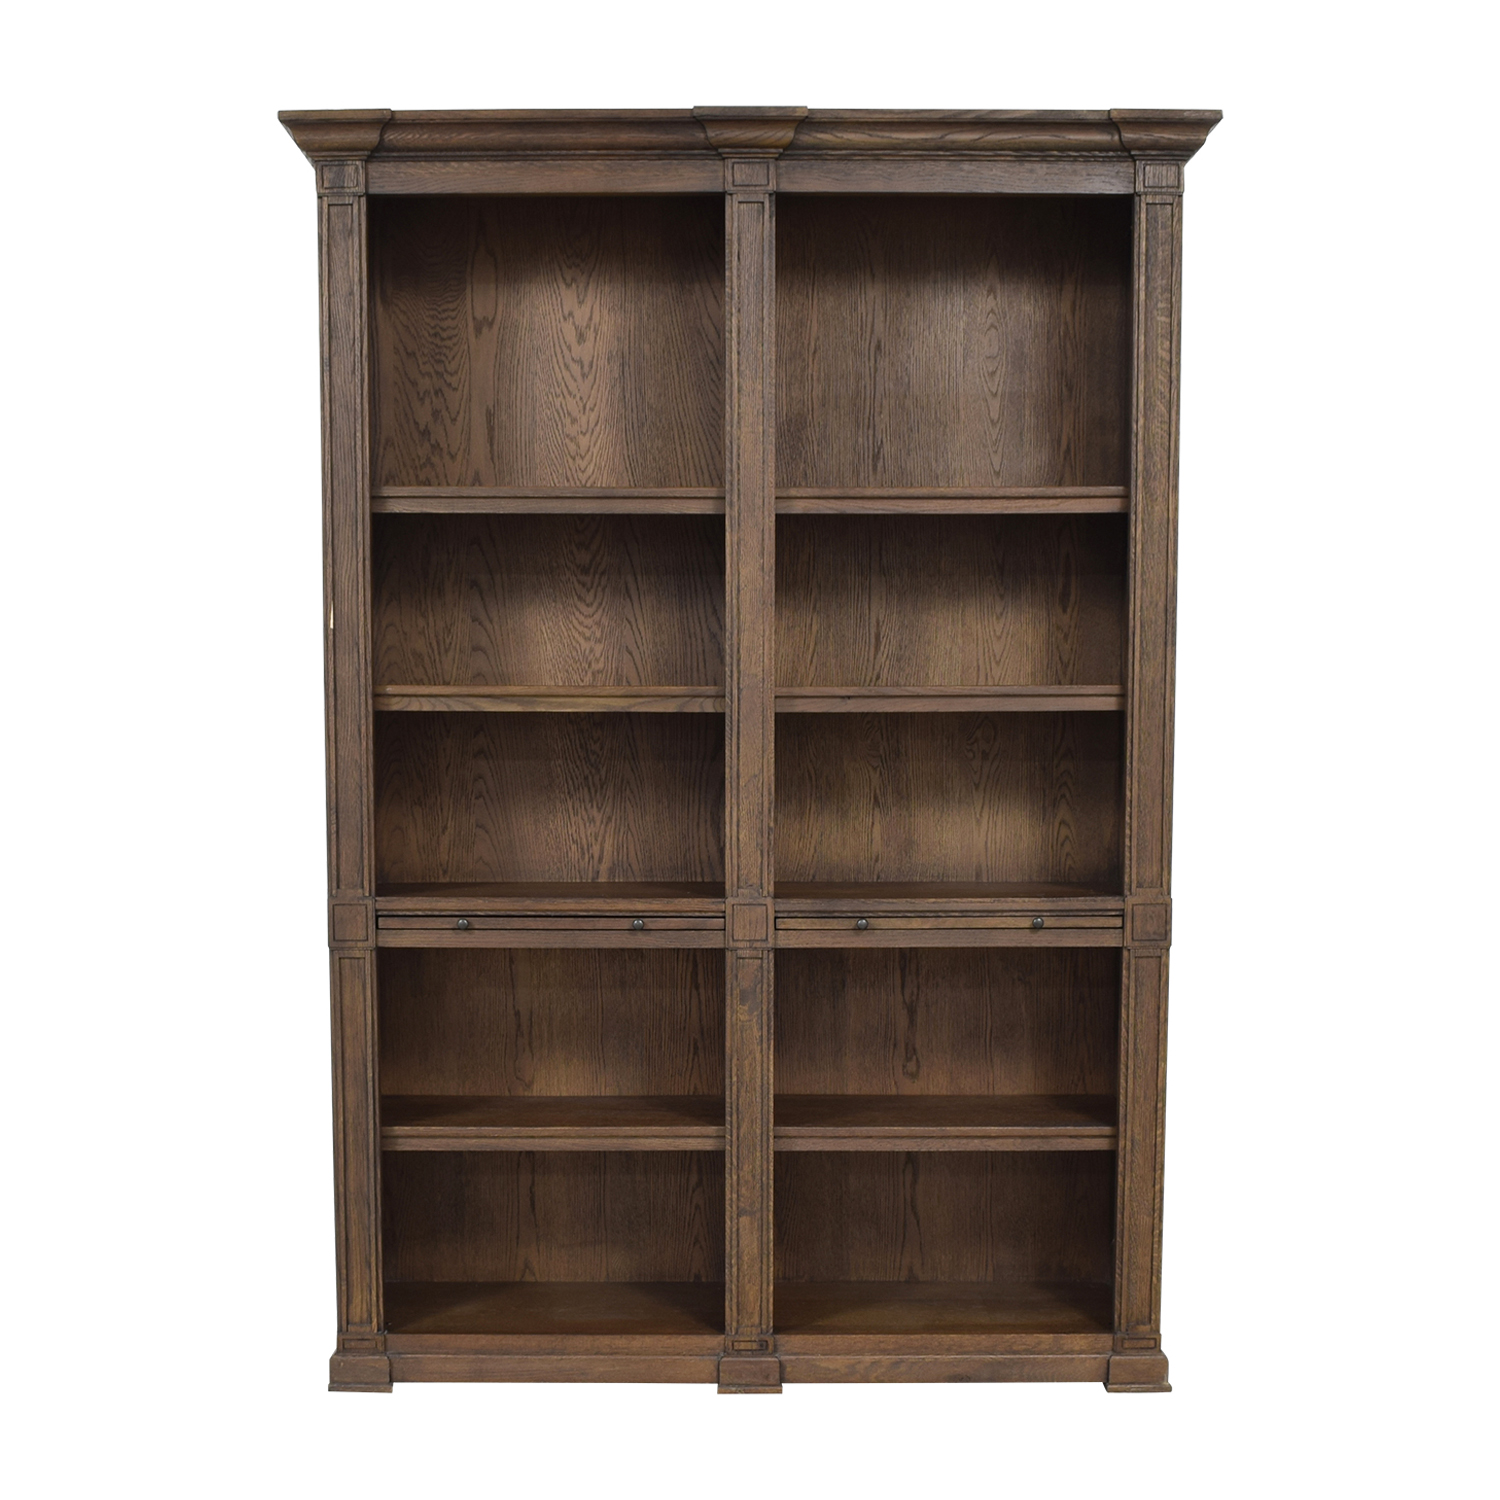 Restoration Hardware Wood Library Bookcase with Desk / Sofas